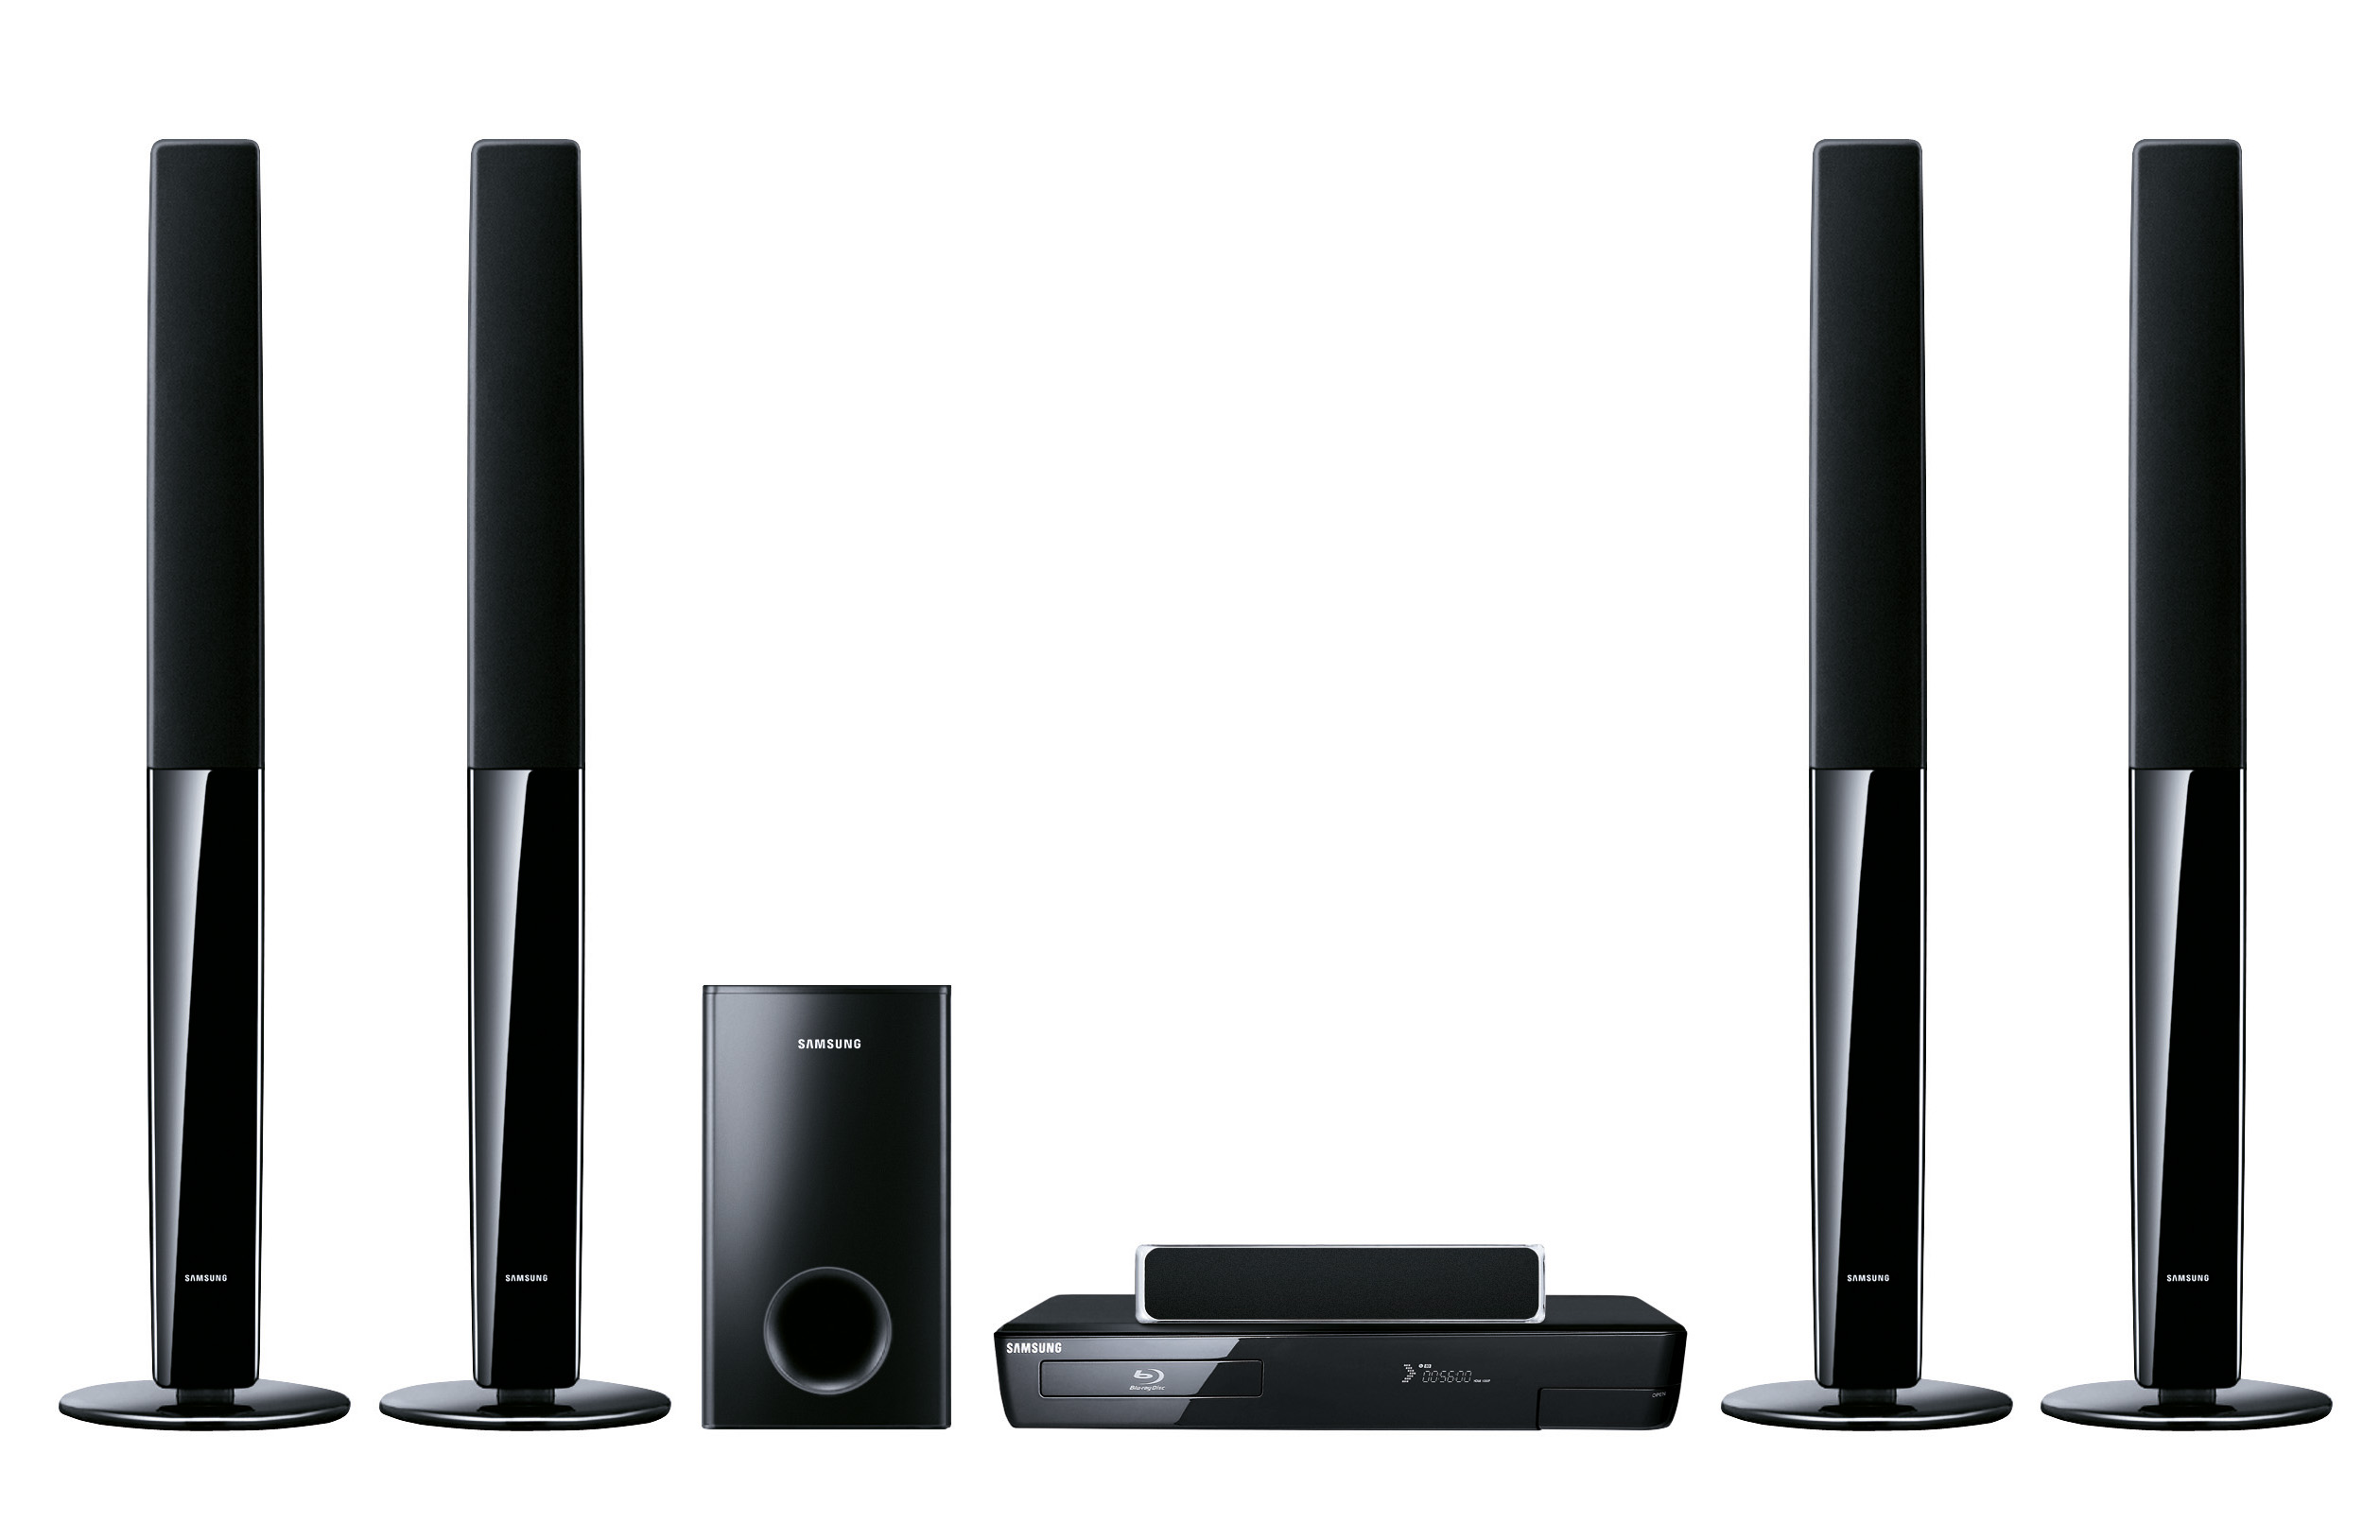 samsung ht bd 1255 r 5 1 blu ray heimkinosystem wifi. Black Bedroom Furniture Sets. Home Design Ideas